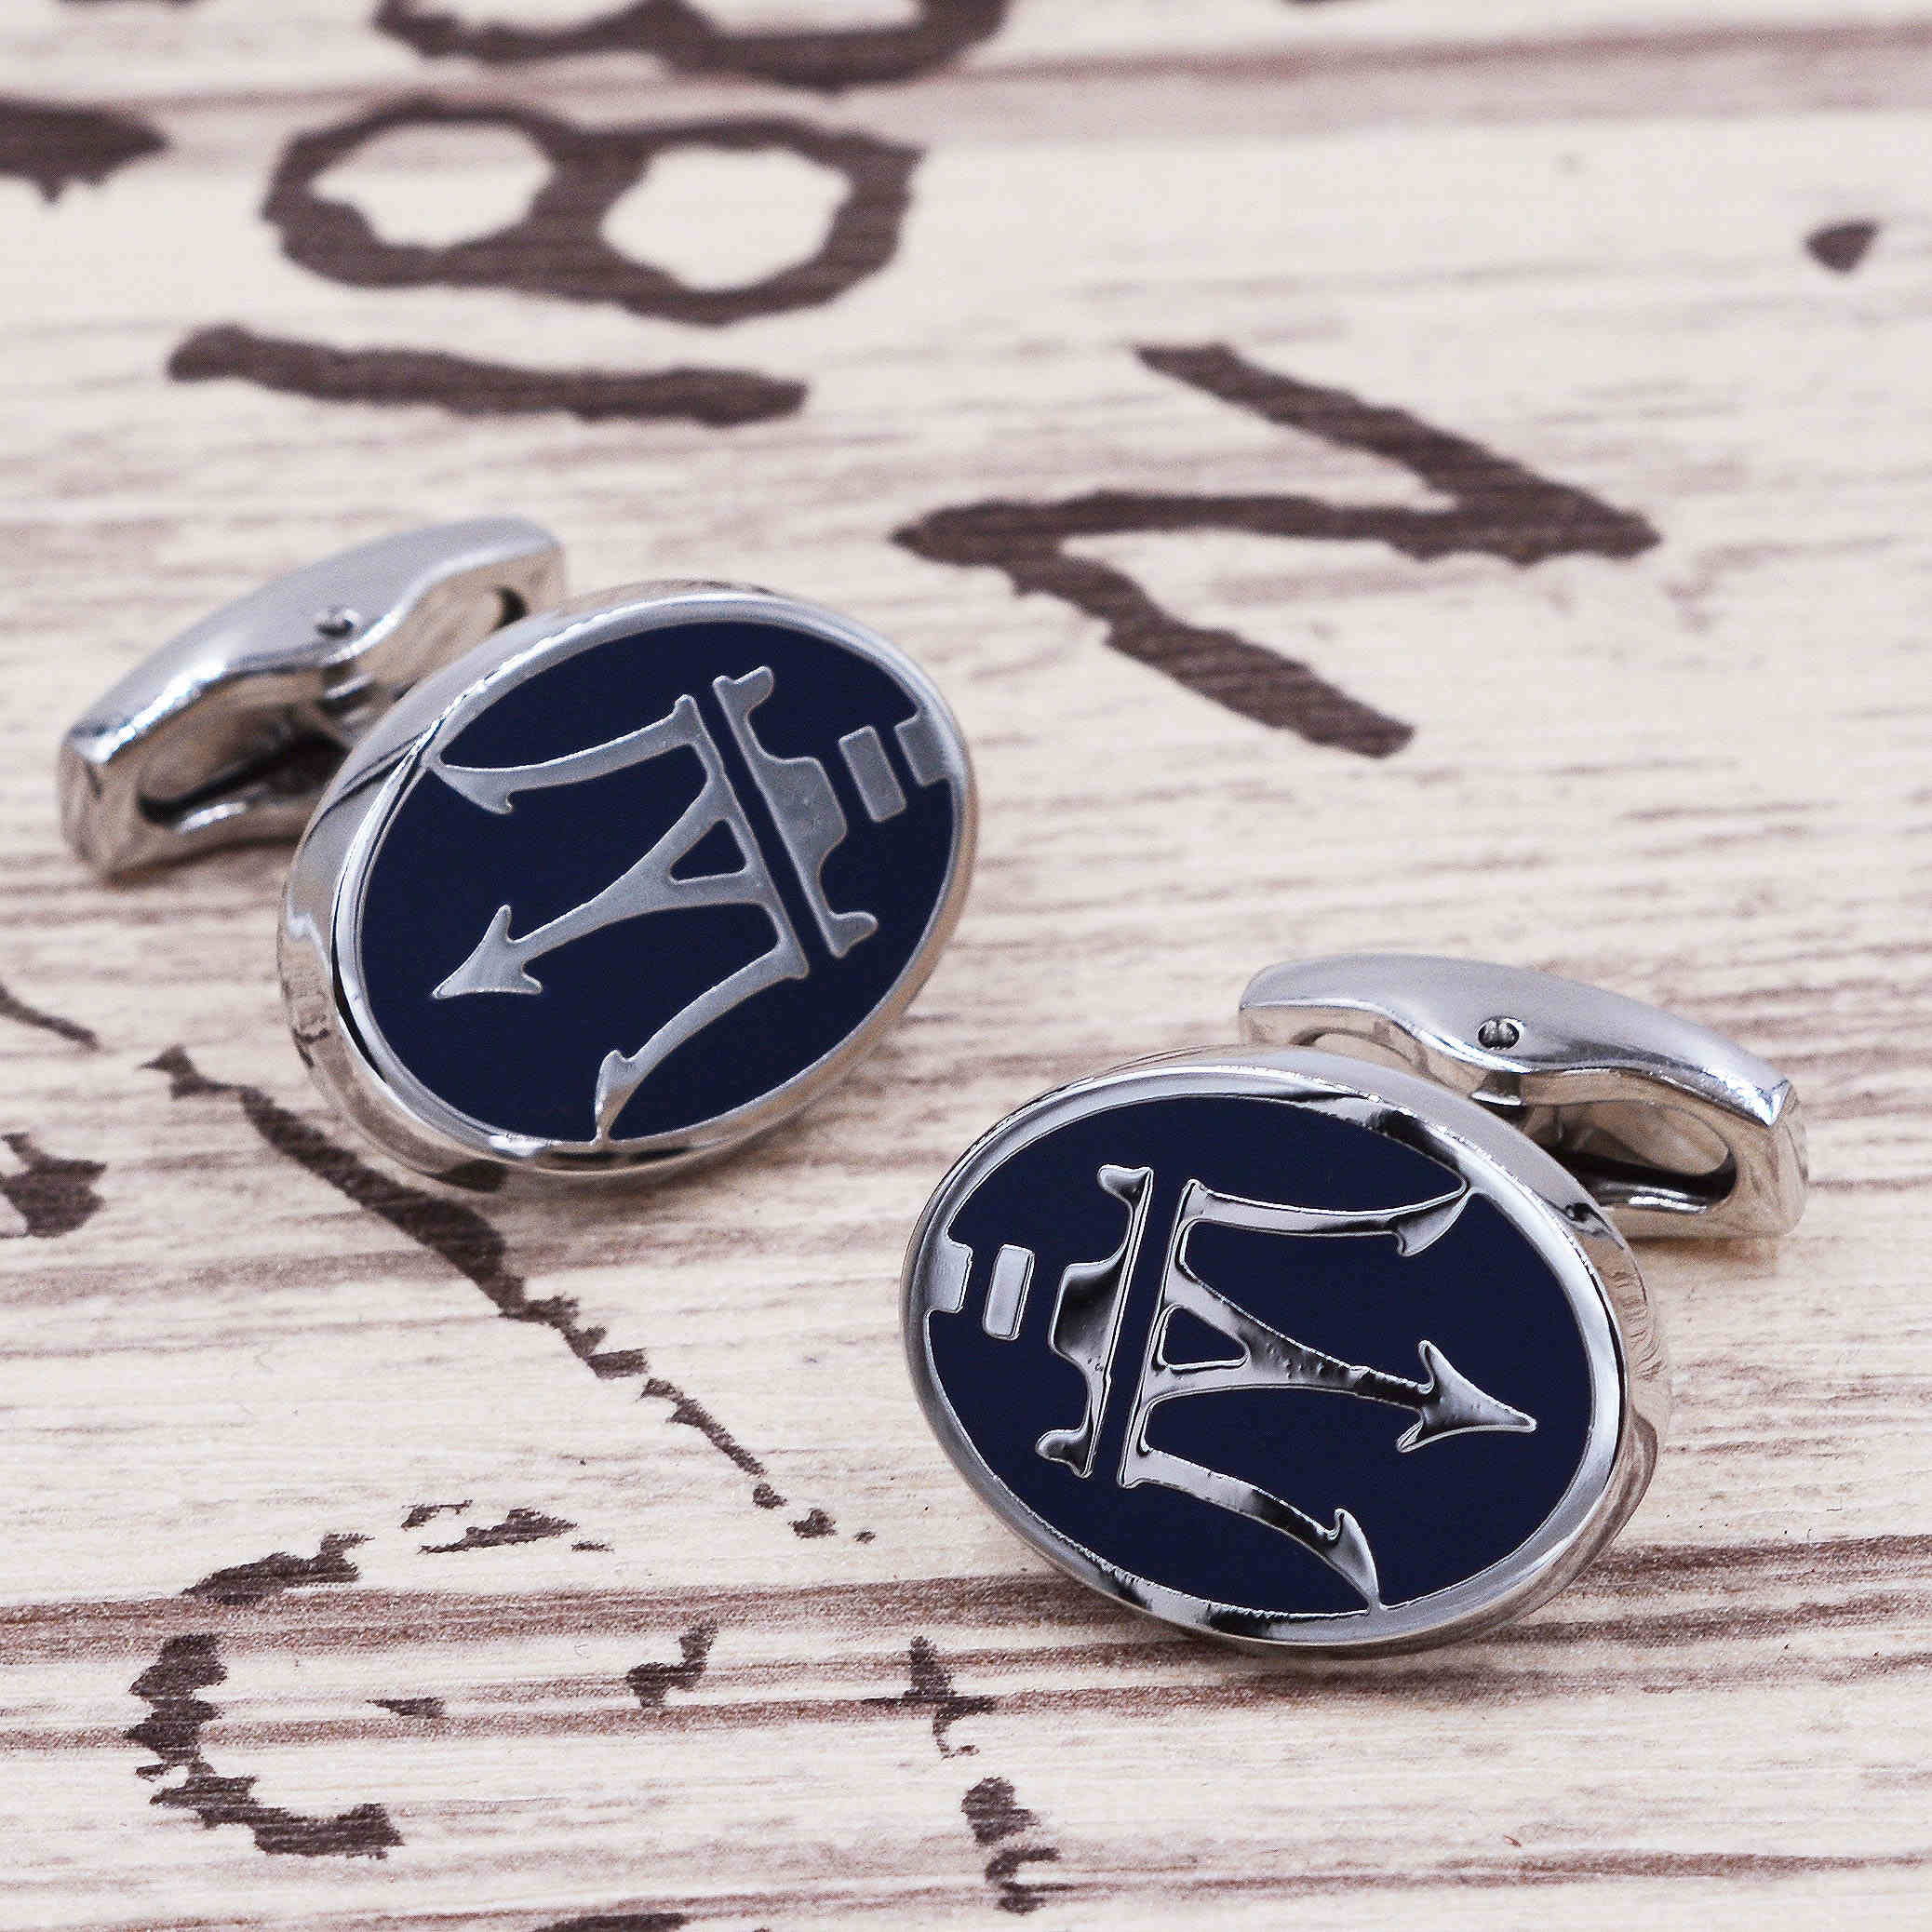 Online shop luxury shirt car logo cufflink for mens harpoon brand online shop luxury shirt car logo cufflink for mens harpoon brand cuff buttons cuff links high quality jewelry aliexpress mobile buycottarizona Images